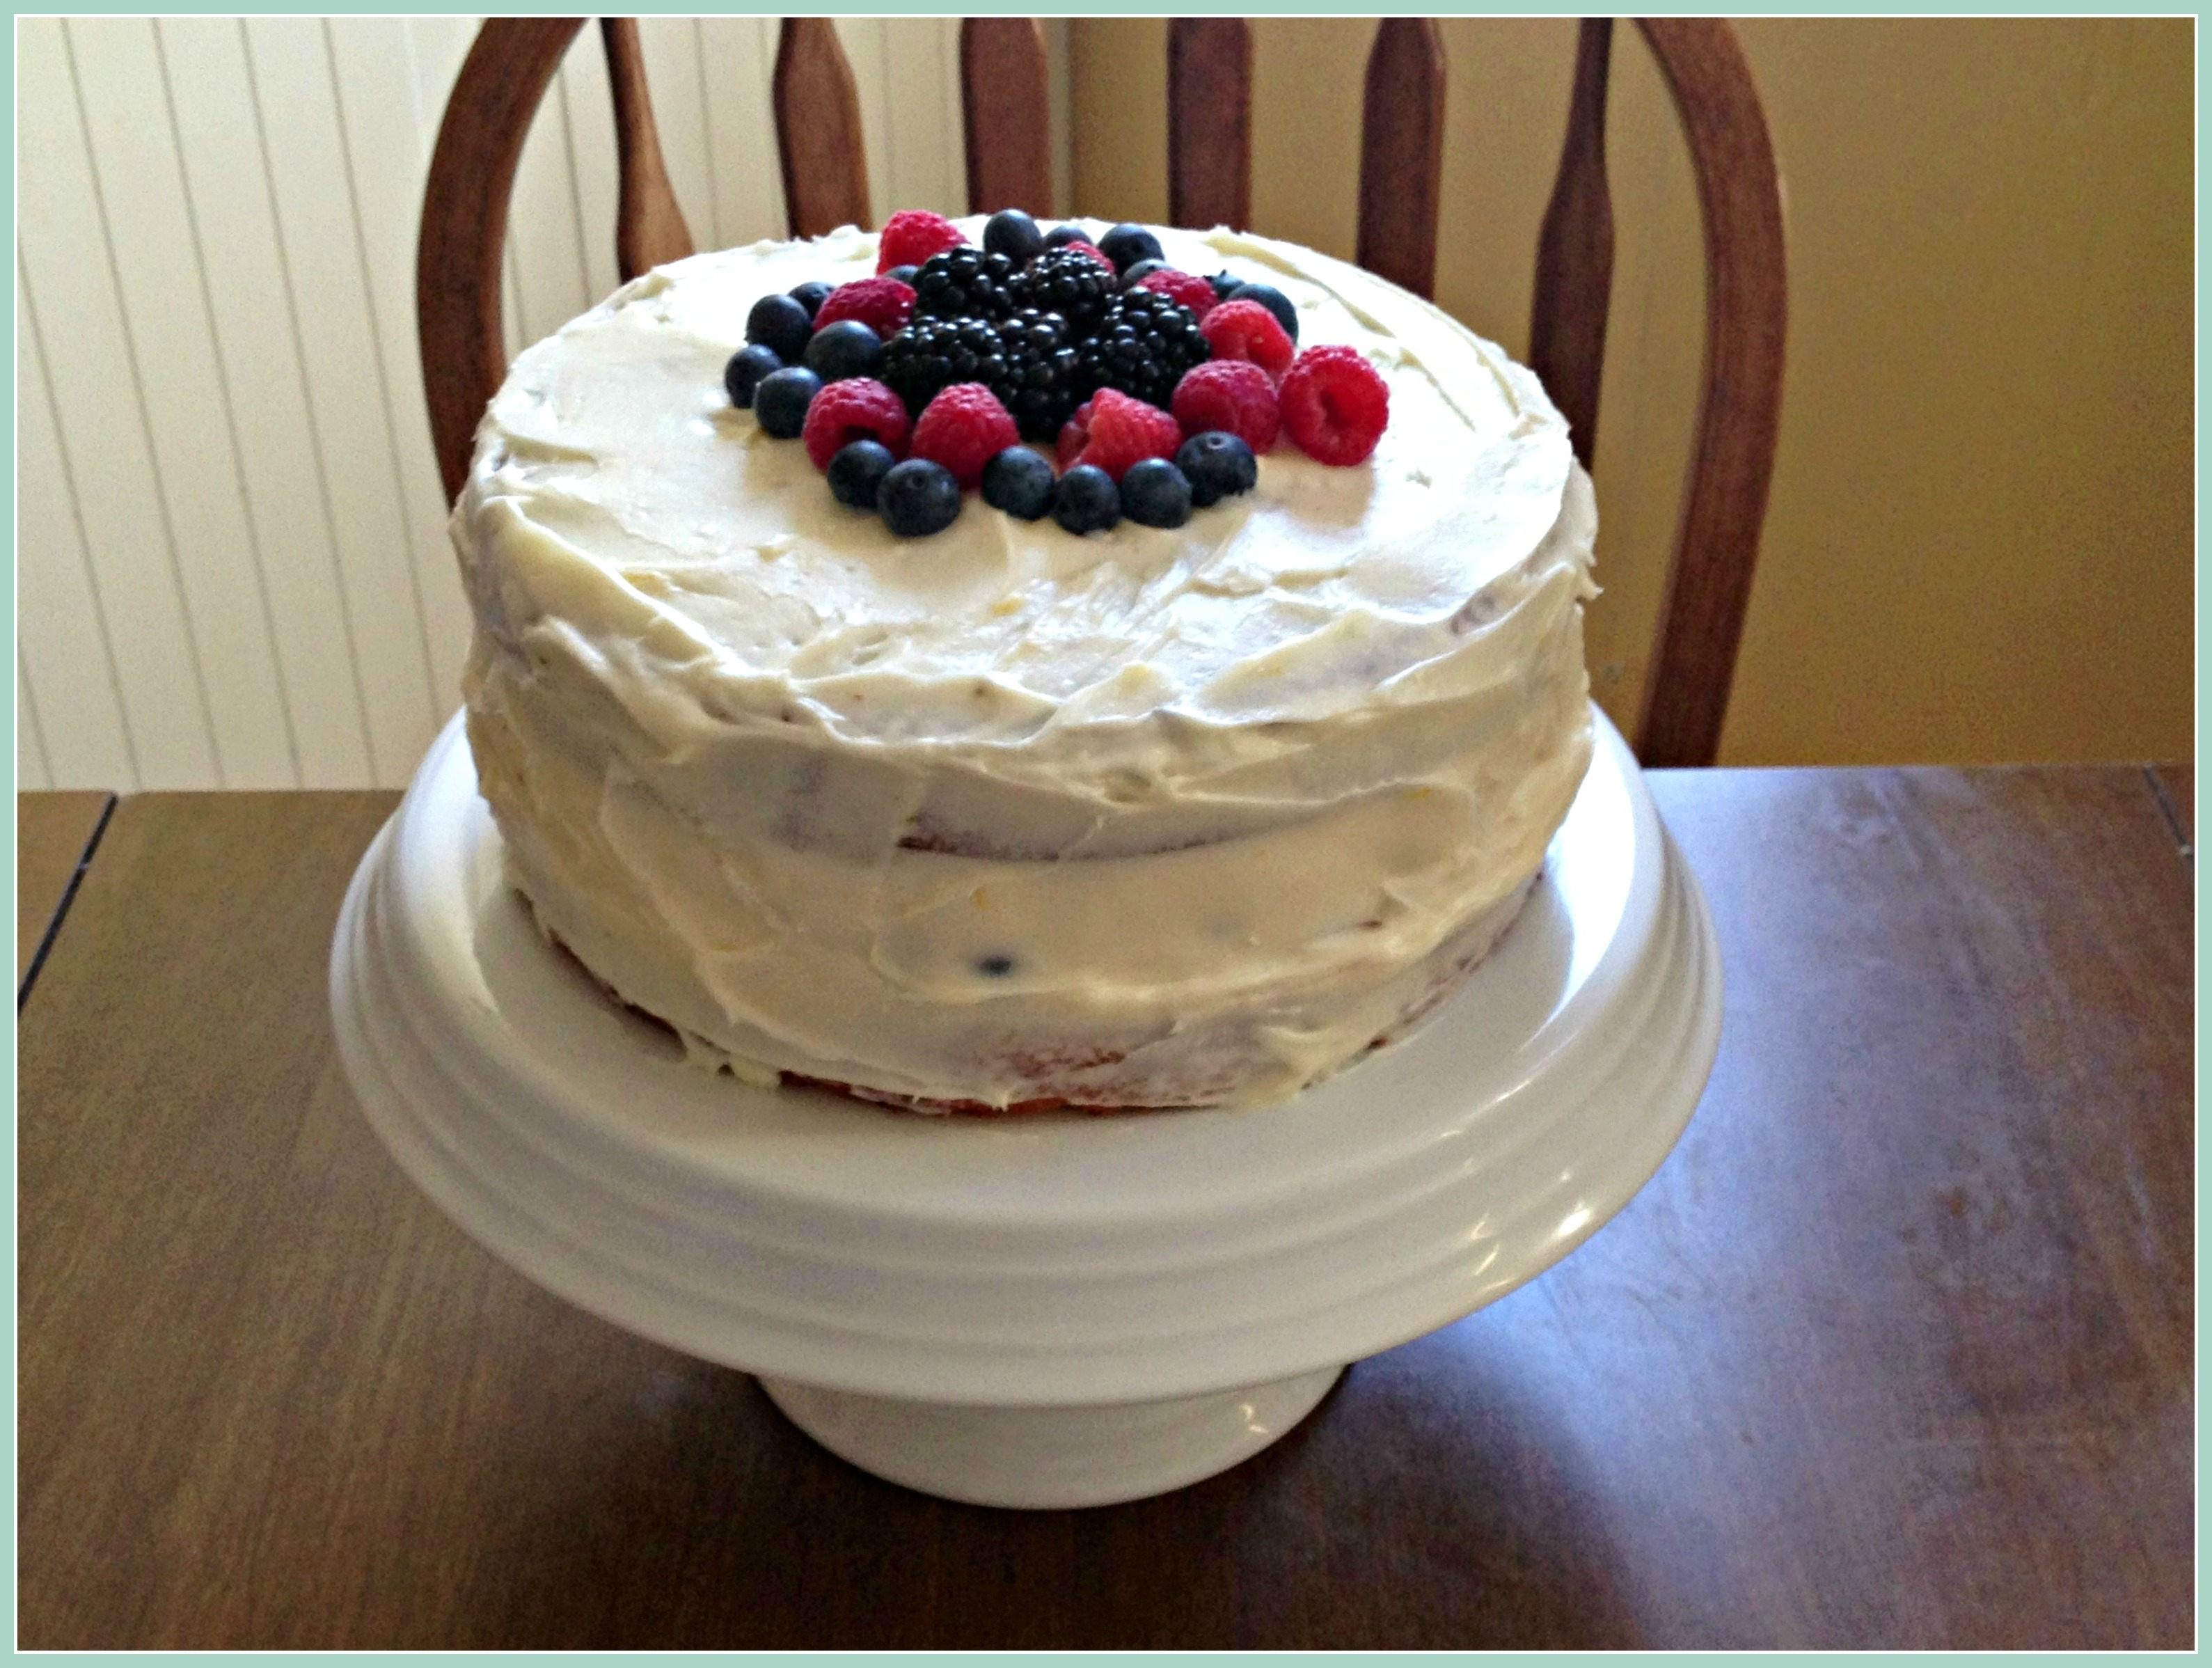 Lemon Buttermilk Cake with Berries